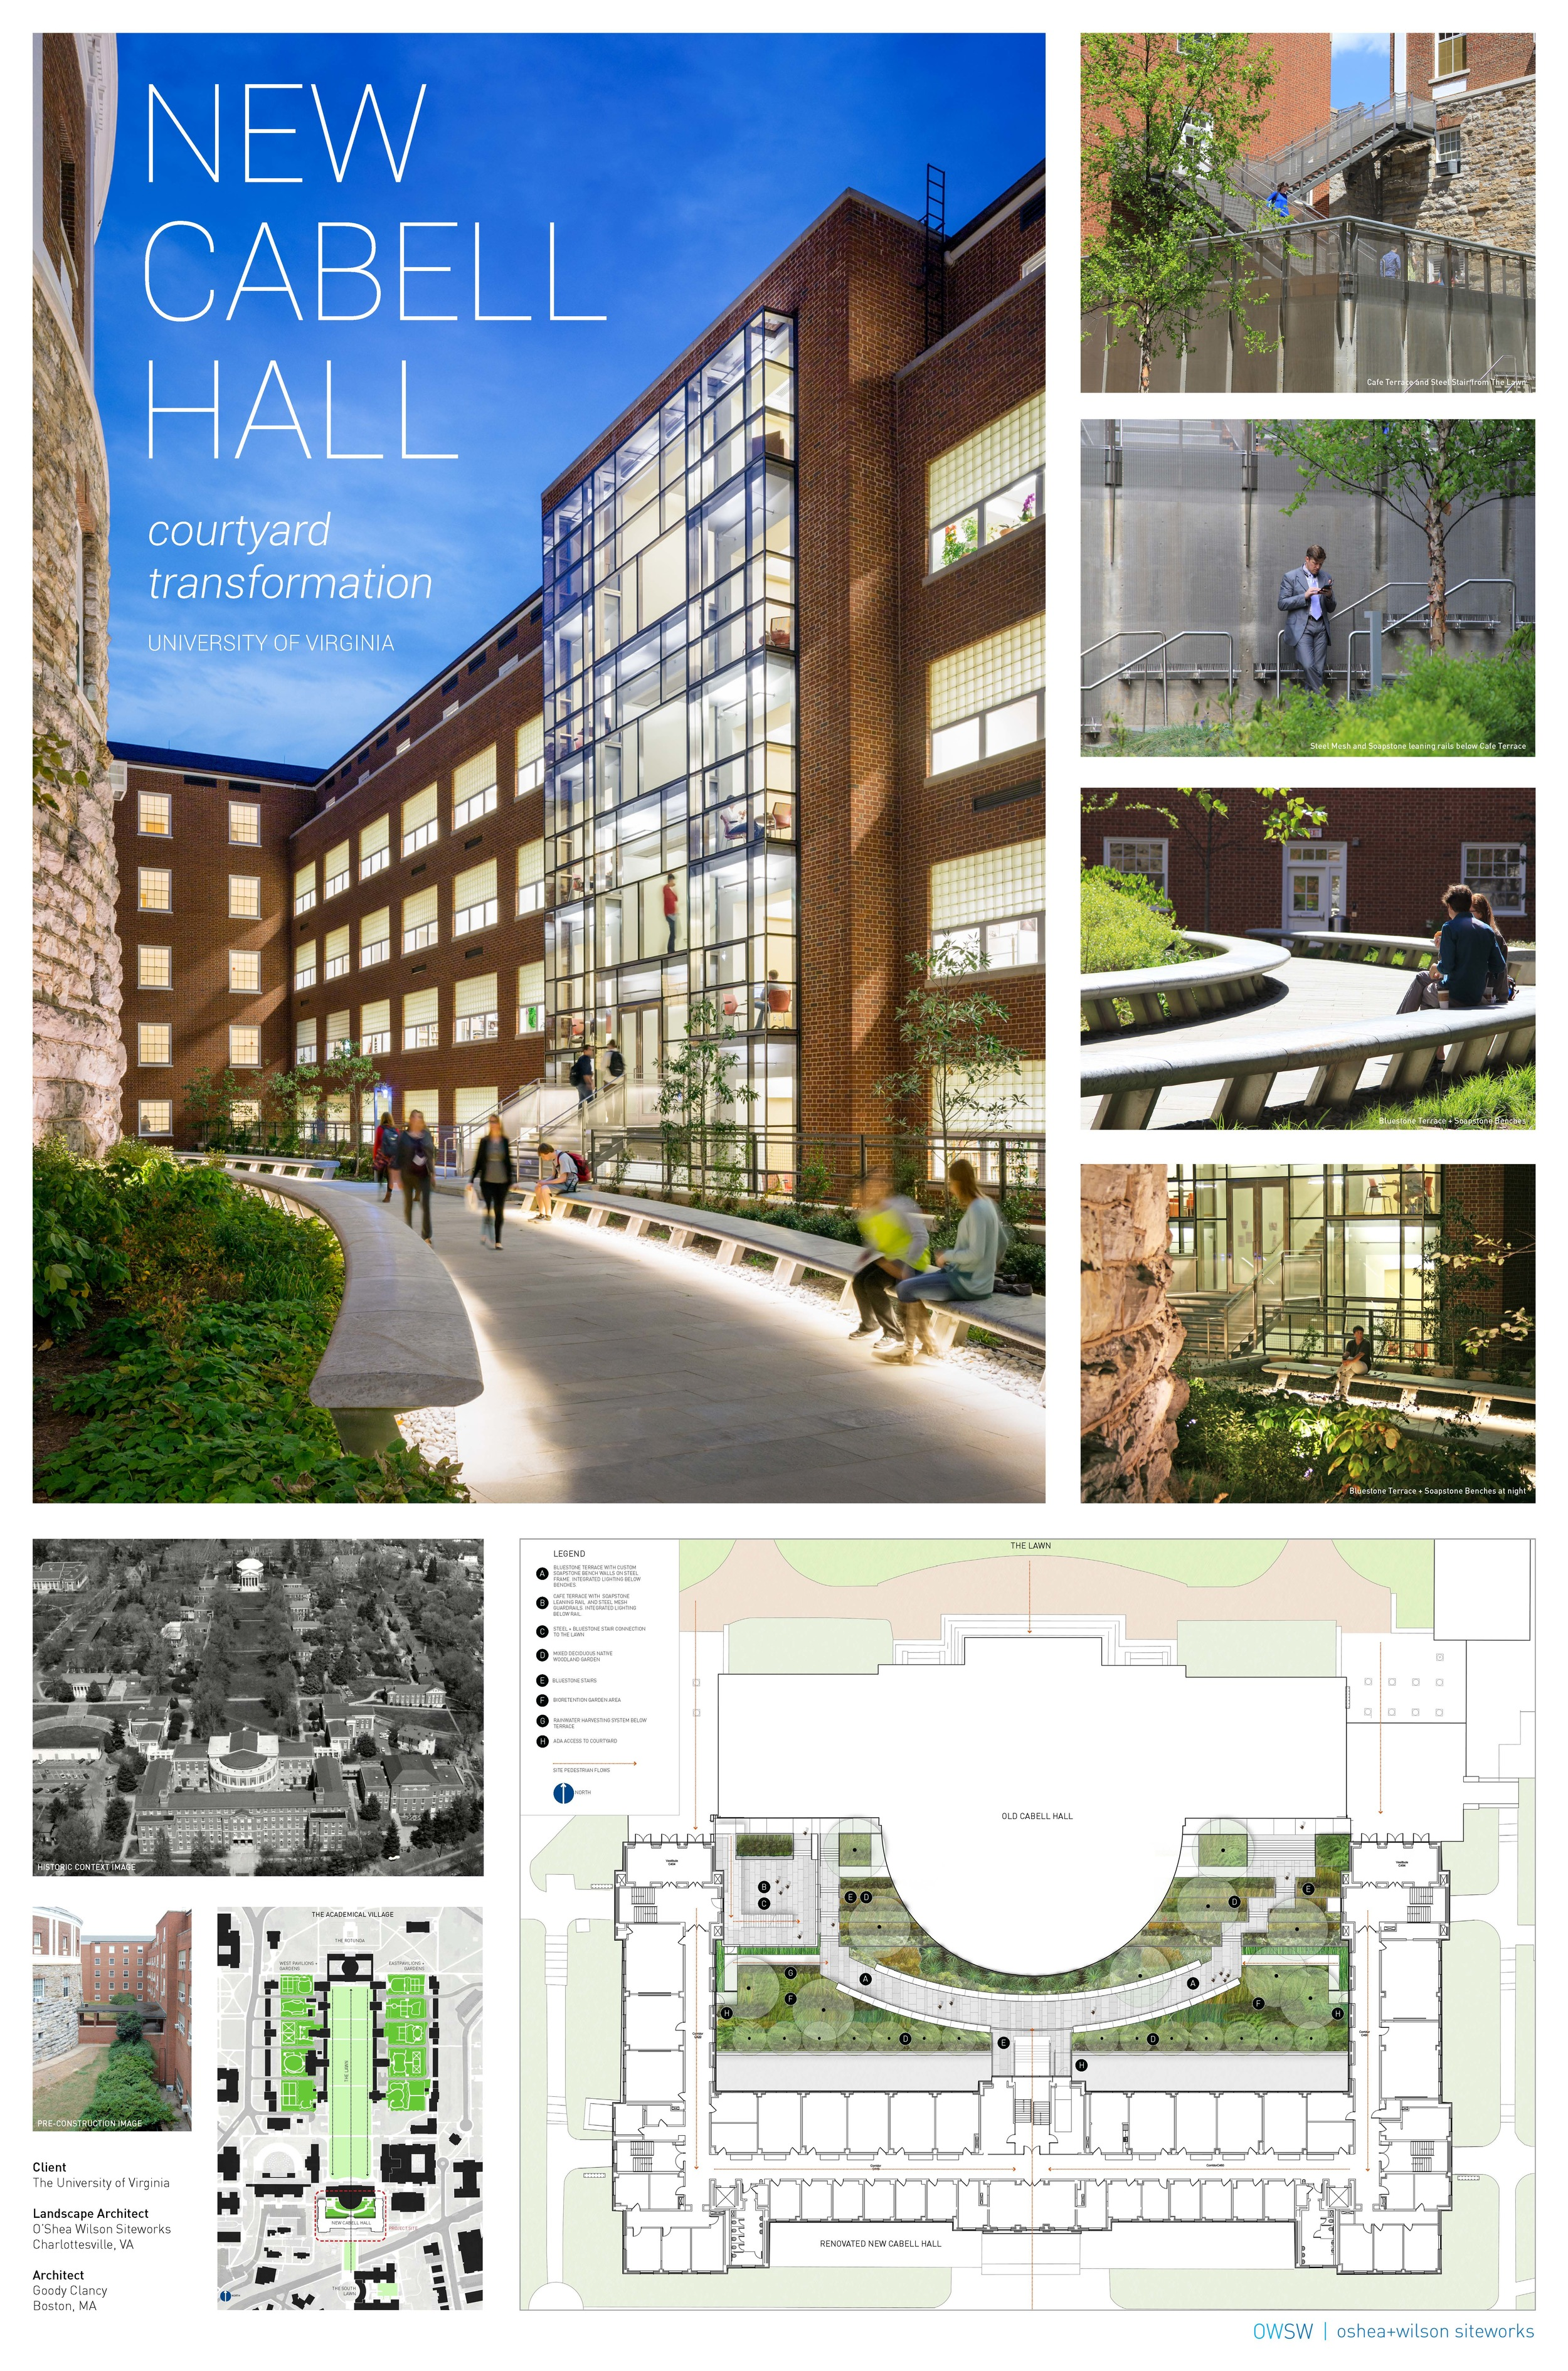 NEW CABELL HALL_COURTYARD TRANSFORMATION_POSTER.jpg